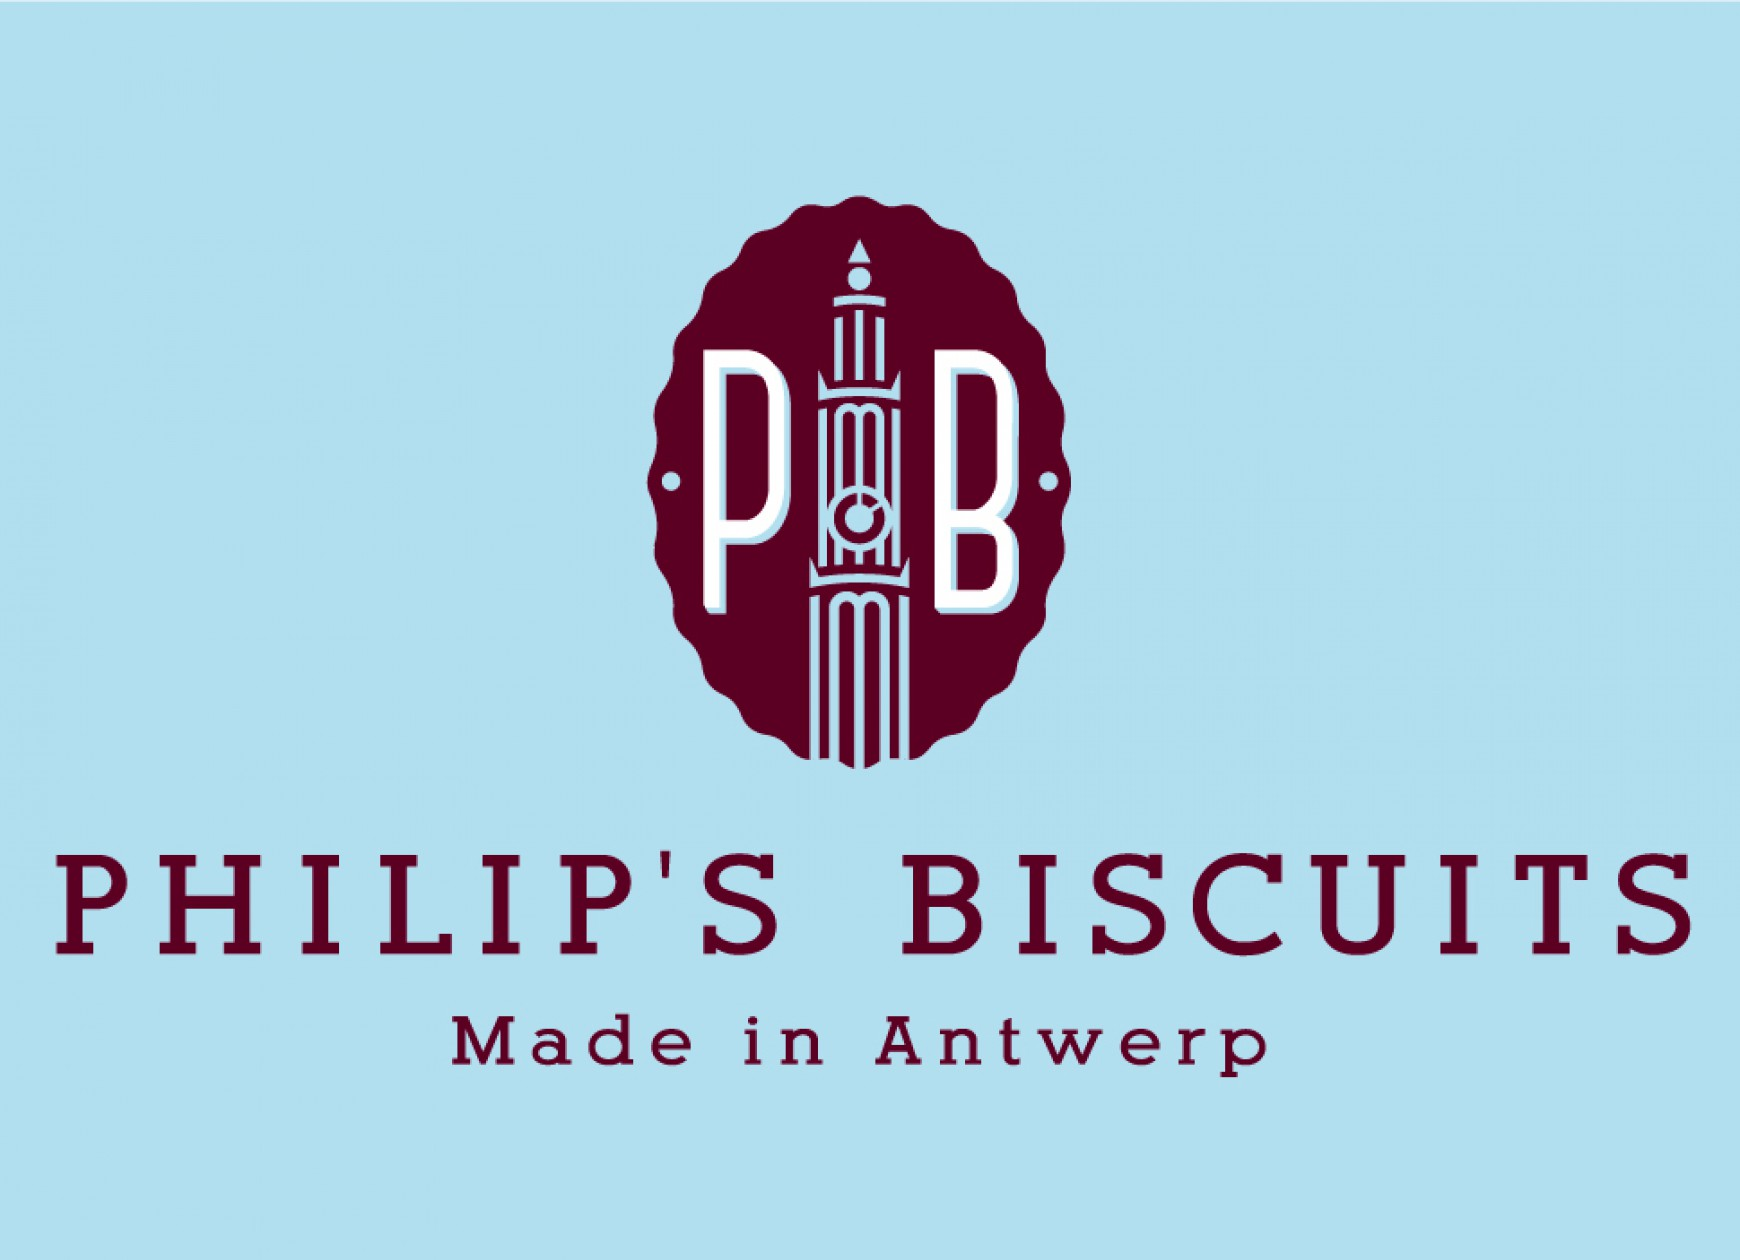 Quatre Mains package design - philips biscuits, rebranding, packaging, antwerpen